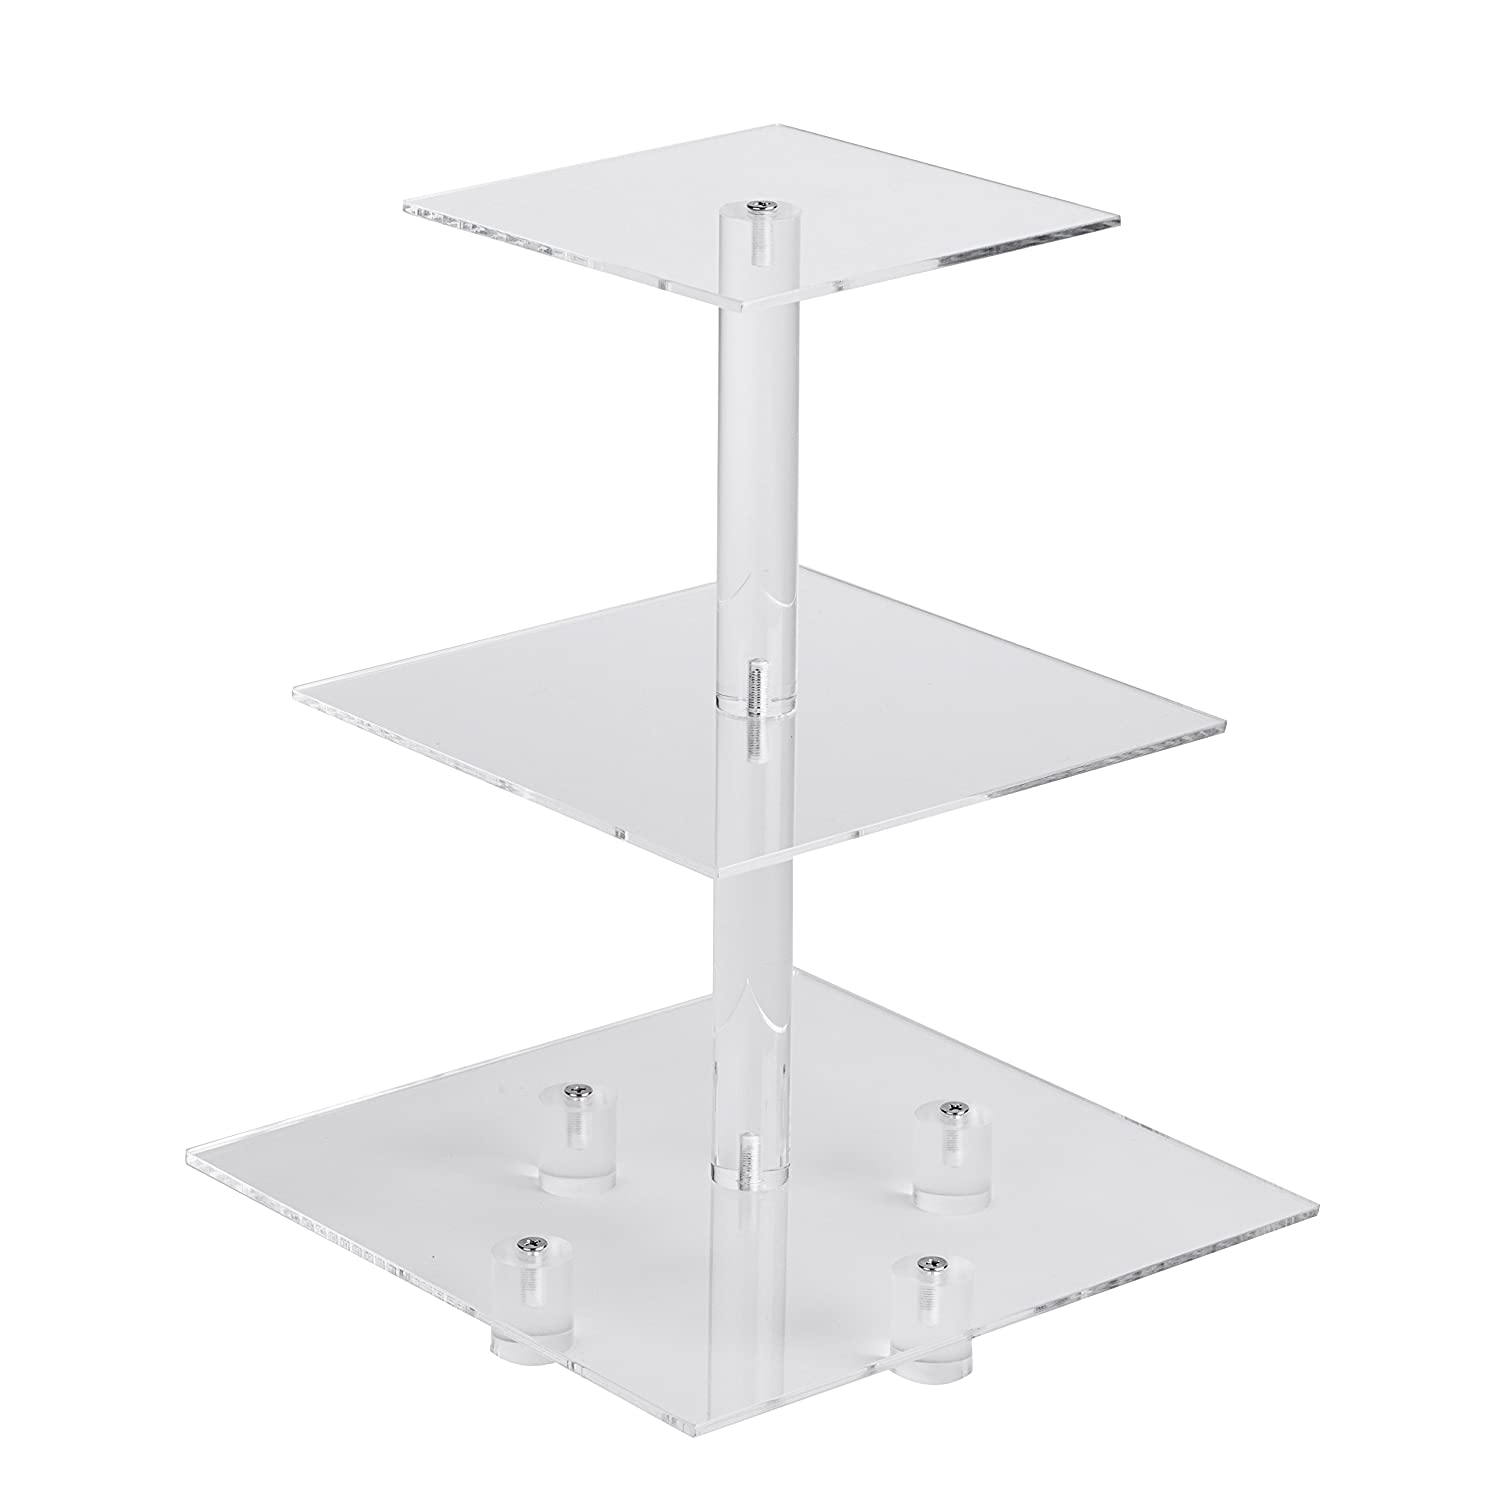 "YestBuy 3 Tiers Square Party Wedding Birthday Clear Tree Tower Acrylic Cupcake Stand 3 tier square with base(6"" between 2 layers)"